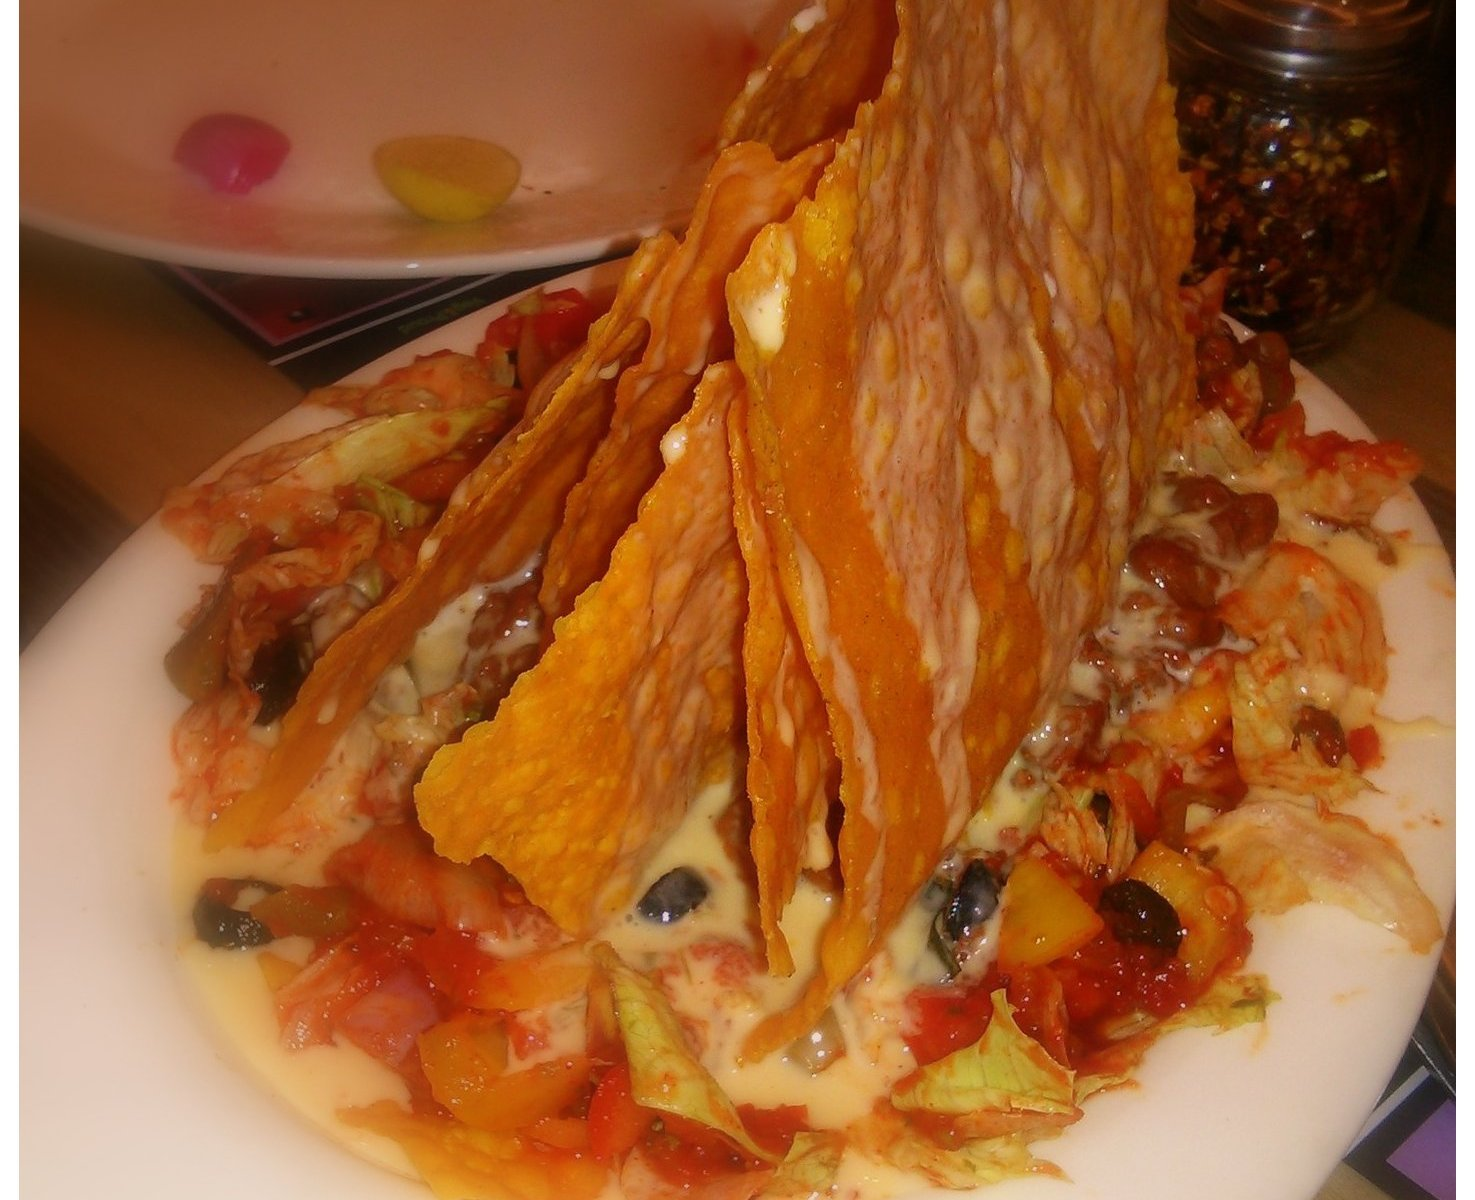 The Big Nachos